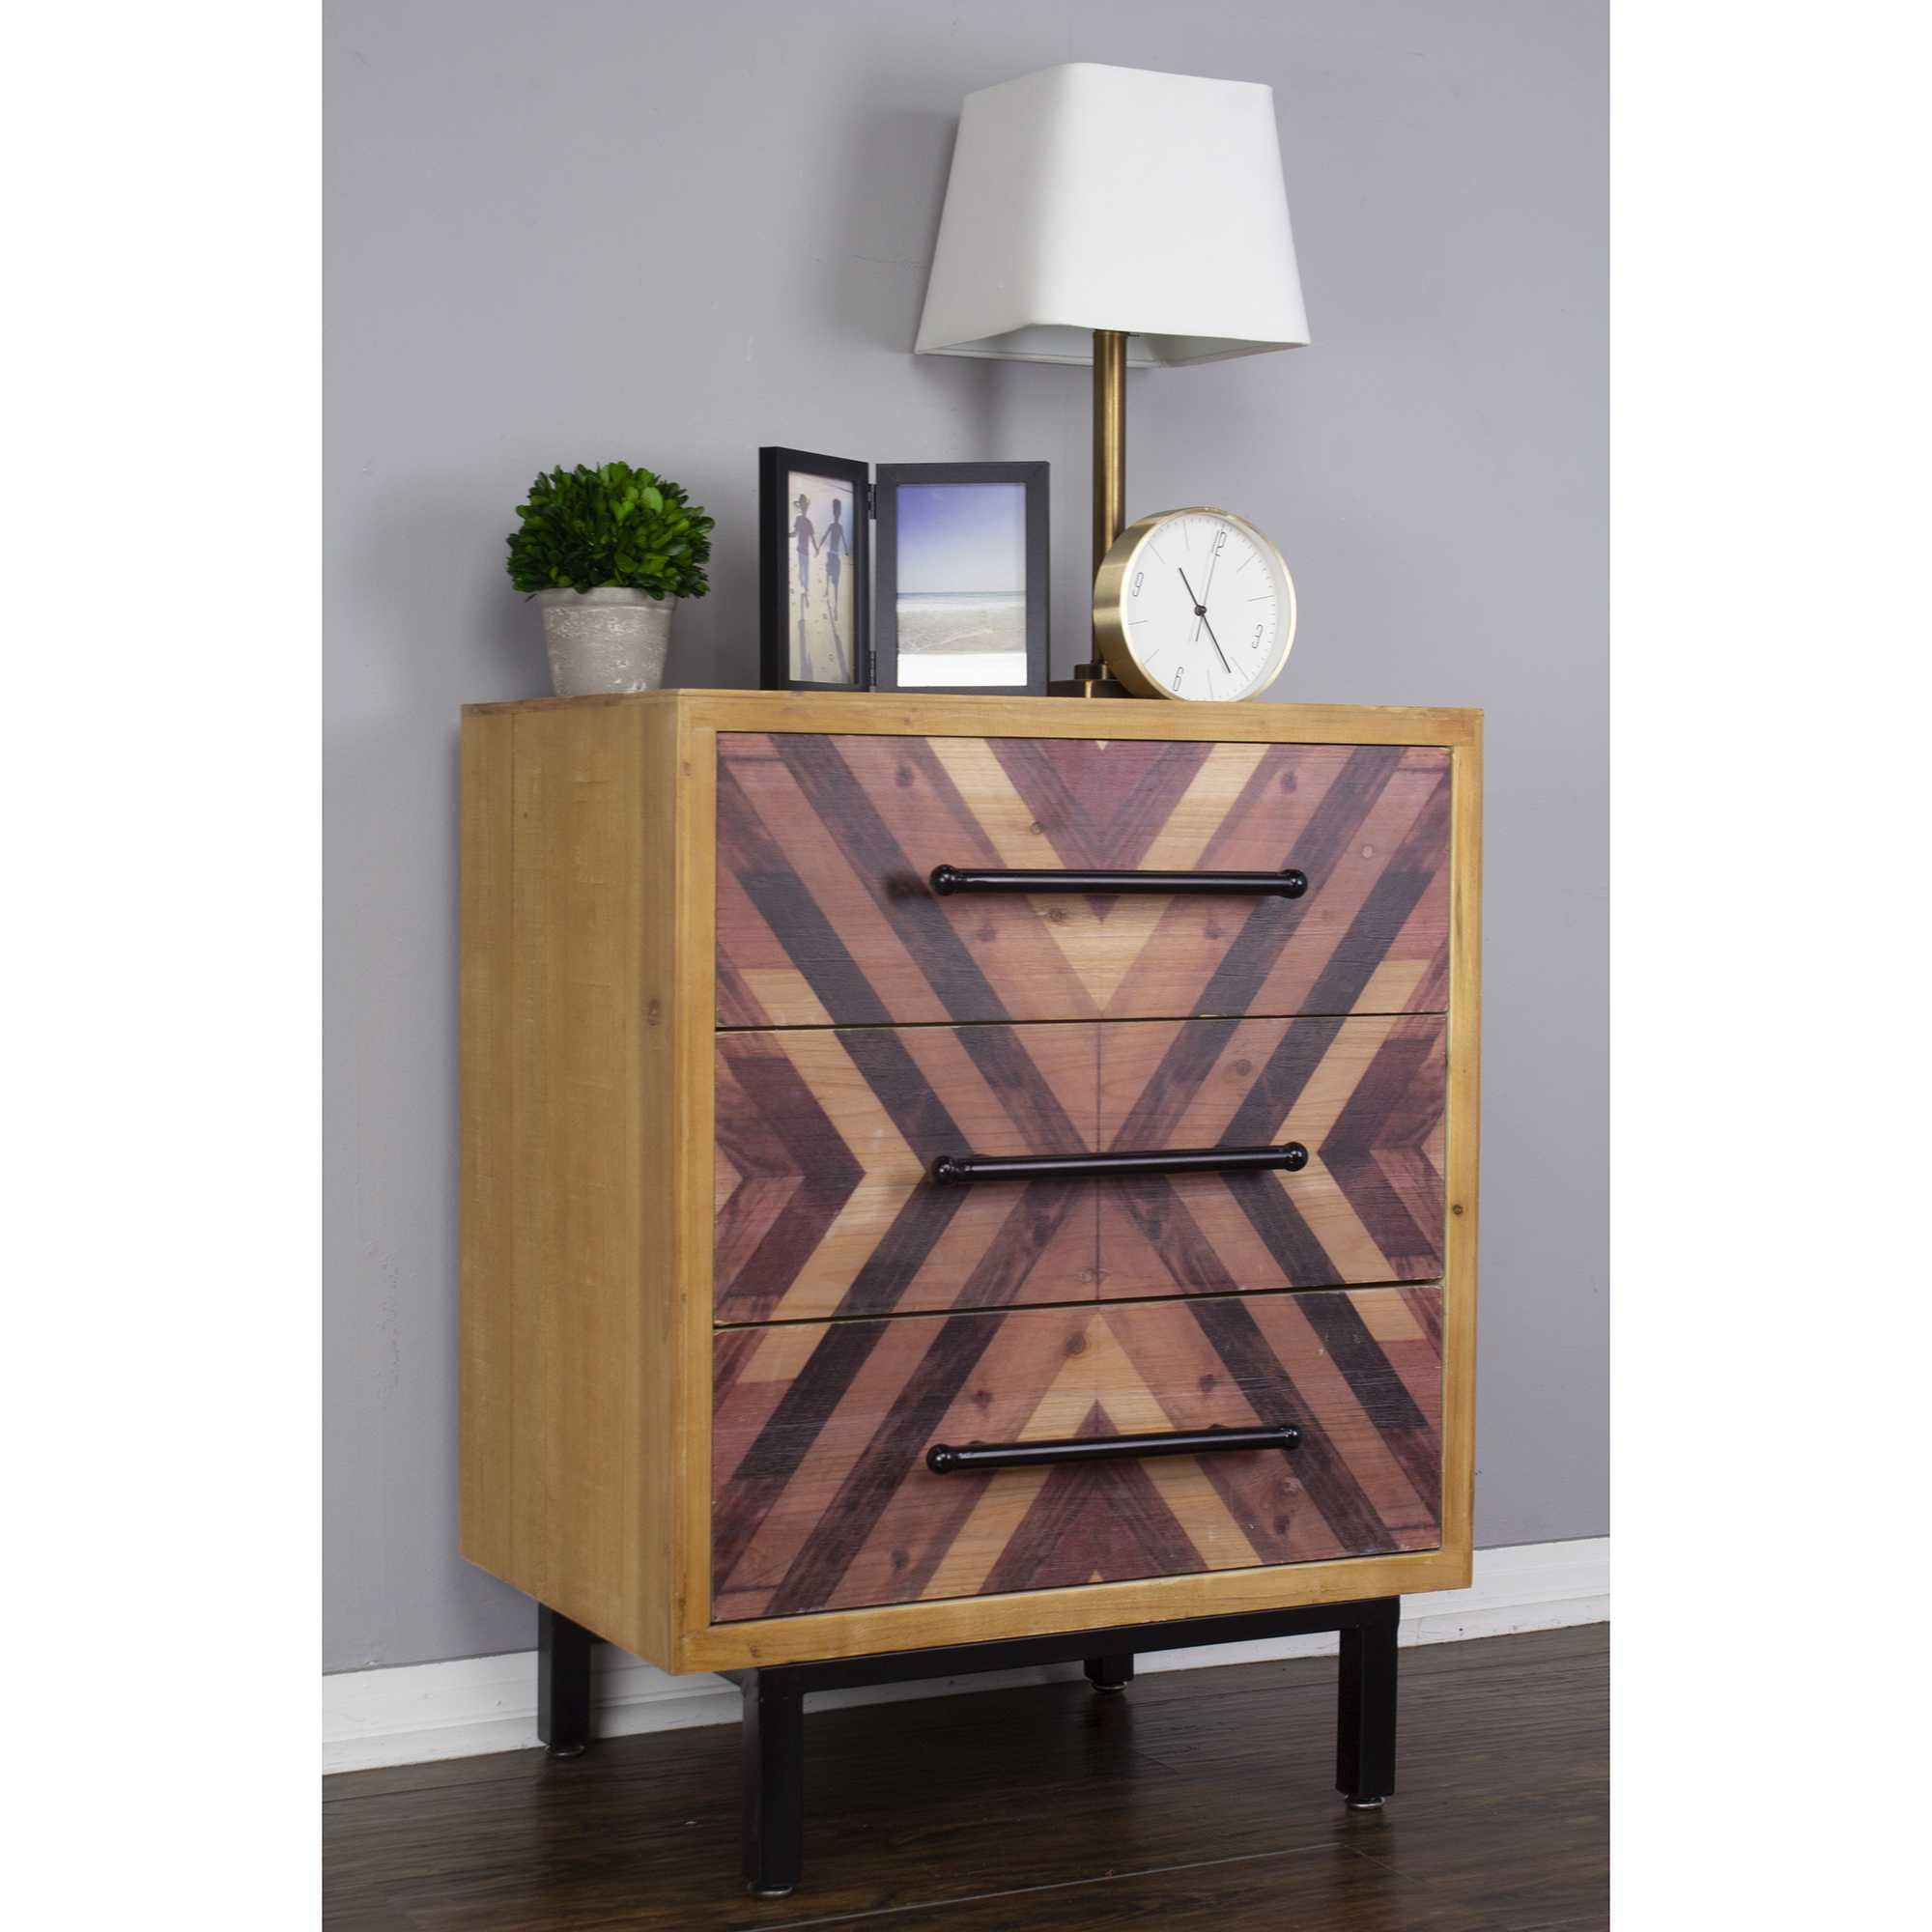 "30"" x 23.75"" x 15.75"" MDF Brown Contemporary Wooden Cabinet"